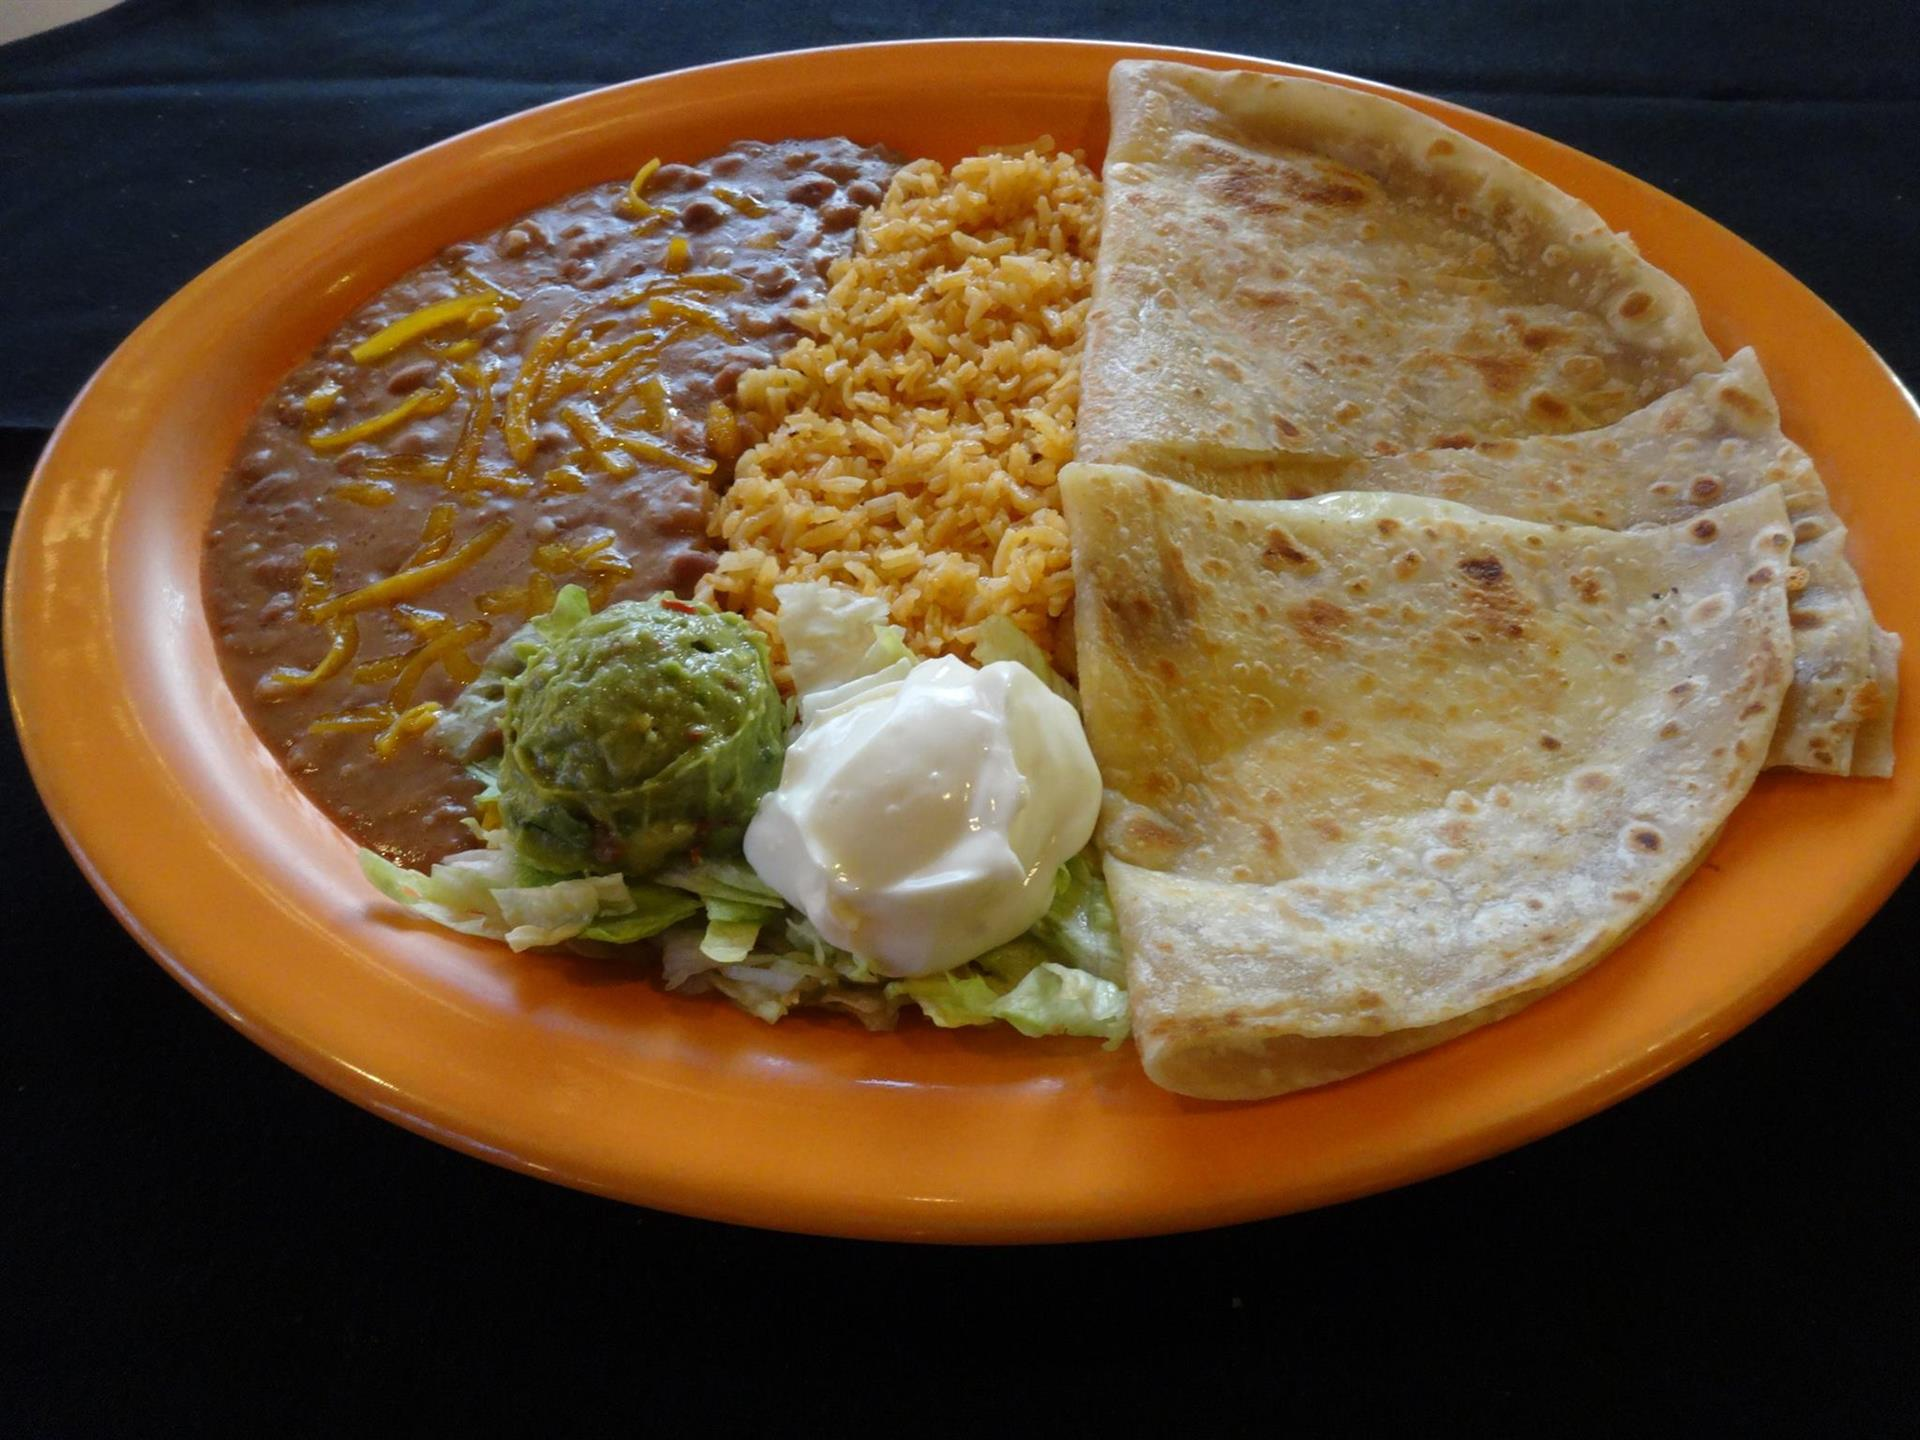 Cheese quesadilla with rice, beans, guacamole and sour cream